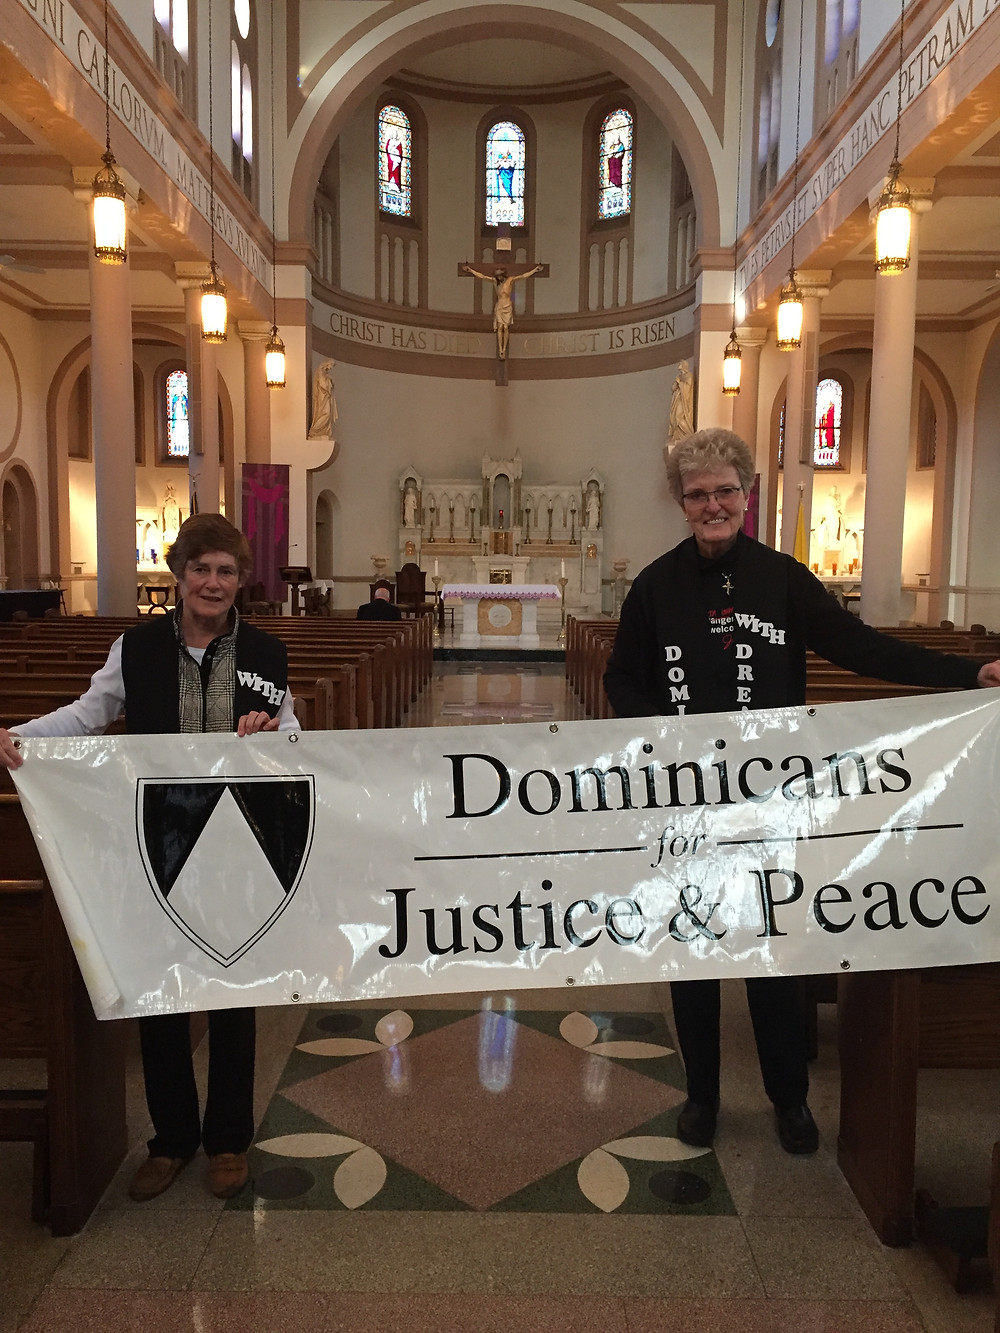 Sisters Mary Ann Collins and Arlene Flaherty at Catholic Day of Action with Dreamers